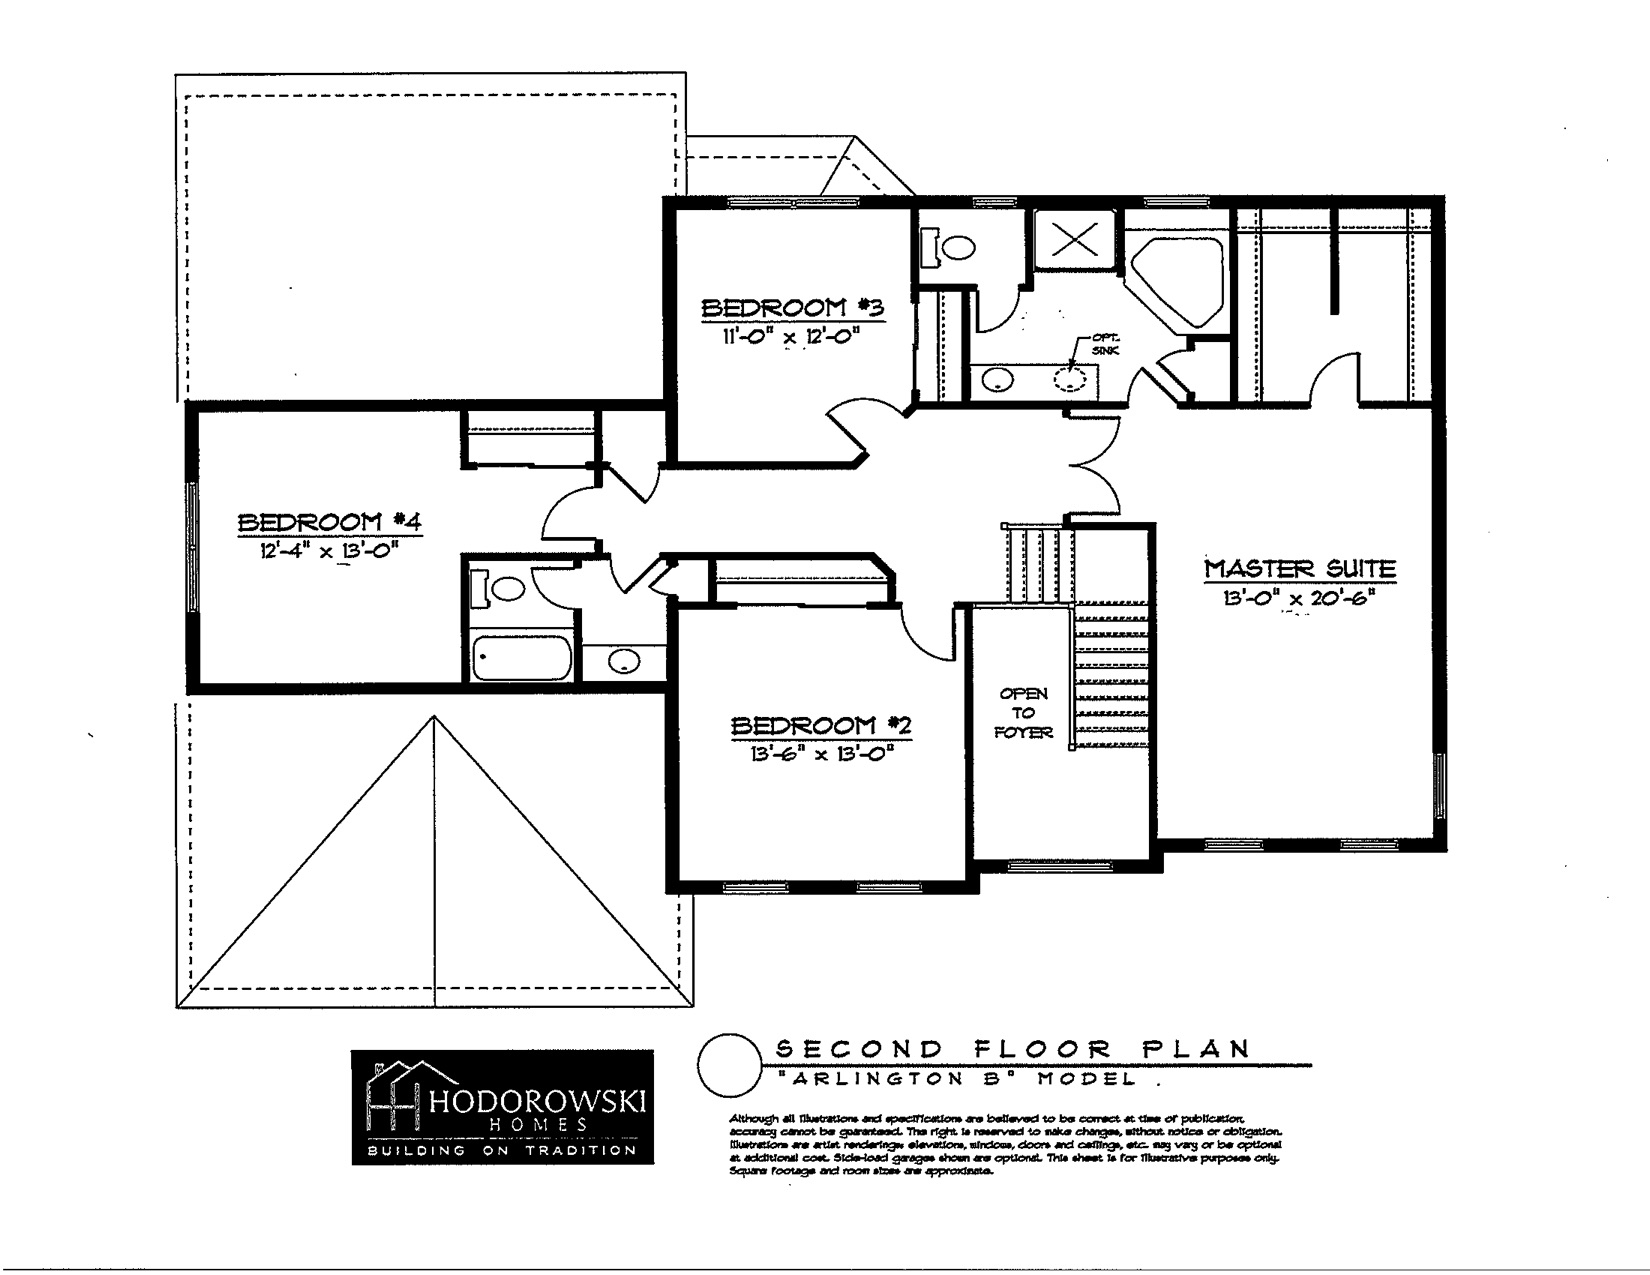 Mohawk Hills Development - Judith-Ann Realty, Inc. on double split master floor plans, two master suites plans, master bedroom with bathroom plans, master bedroom floor plans, double wide mobile home carports, ranch bunkhouse plans, heather gardens floor plans, double porch house plans, double fireplace house plans, 16x70 mobile home floor plans, double wide mobile home doors, twin mastersuite house plans, double master home plans, multi-generational homes floor plans, double master house plans, bedroom design plans, double deck house plans, bedroom suite plans, cute 2 bedroom home plans, champion mobile home floor plans,